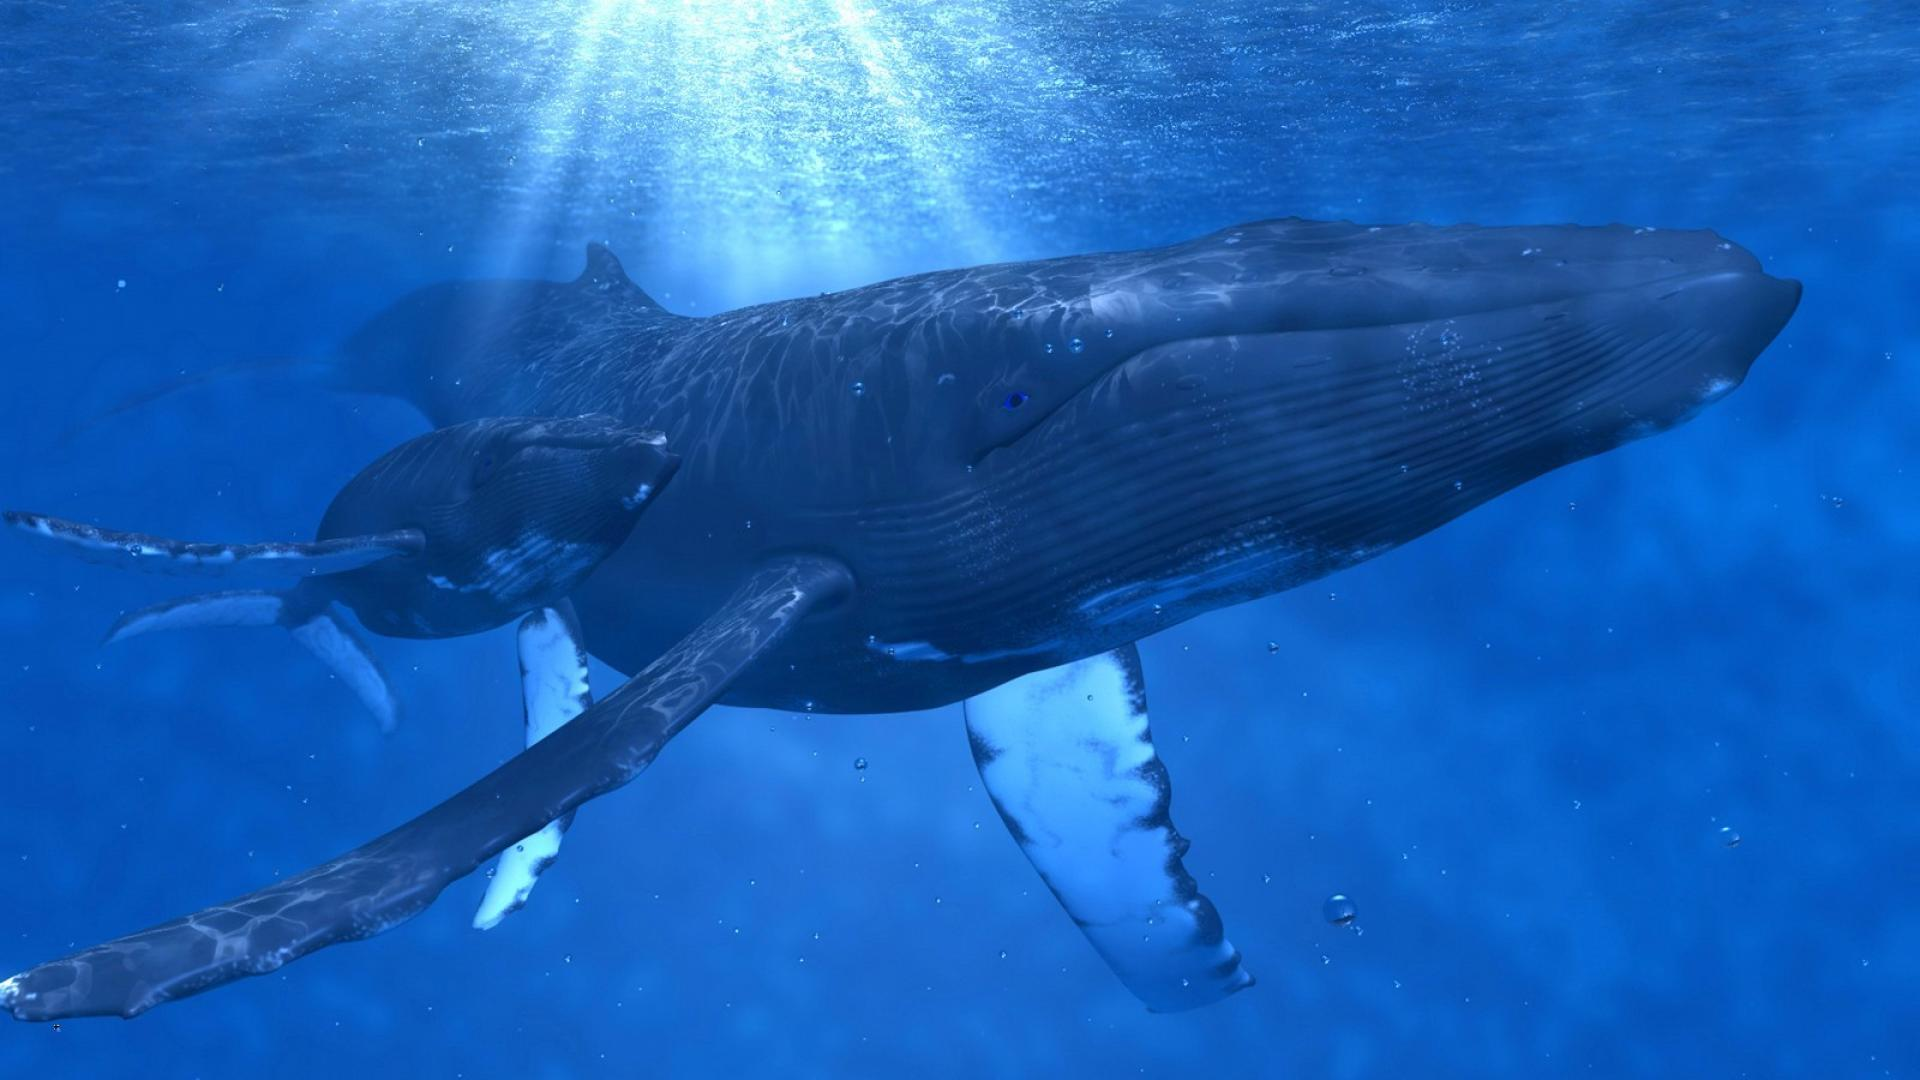 Animals whales underwater baby humpback whale wallpaper 57661 1920x1080